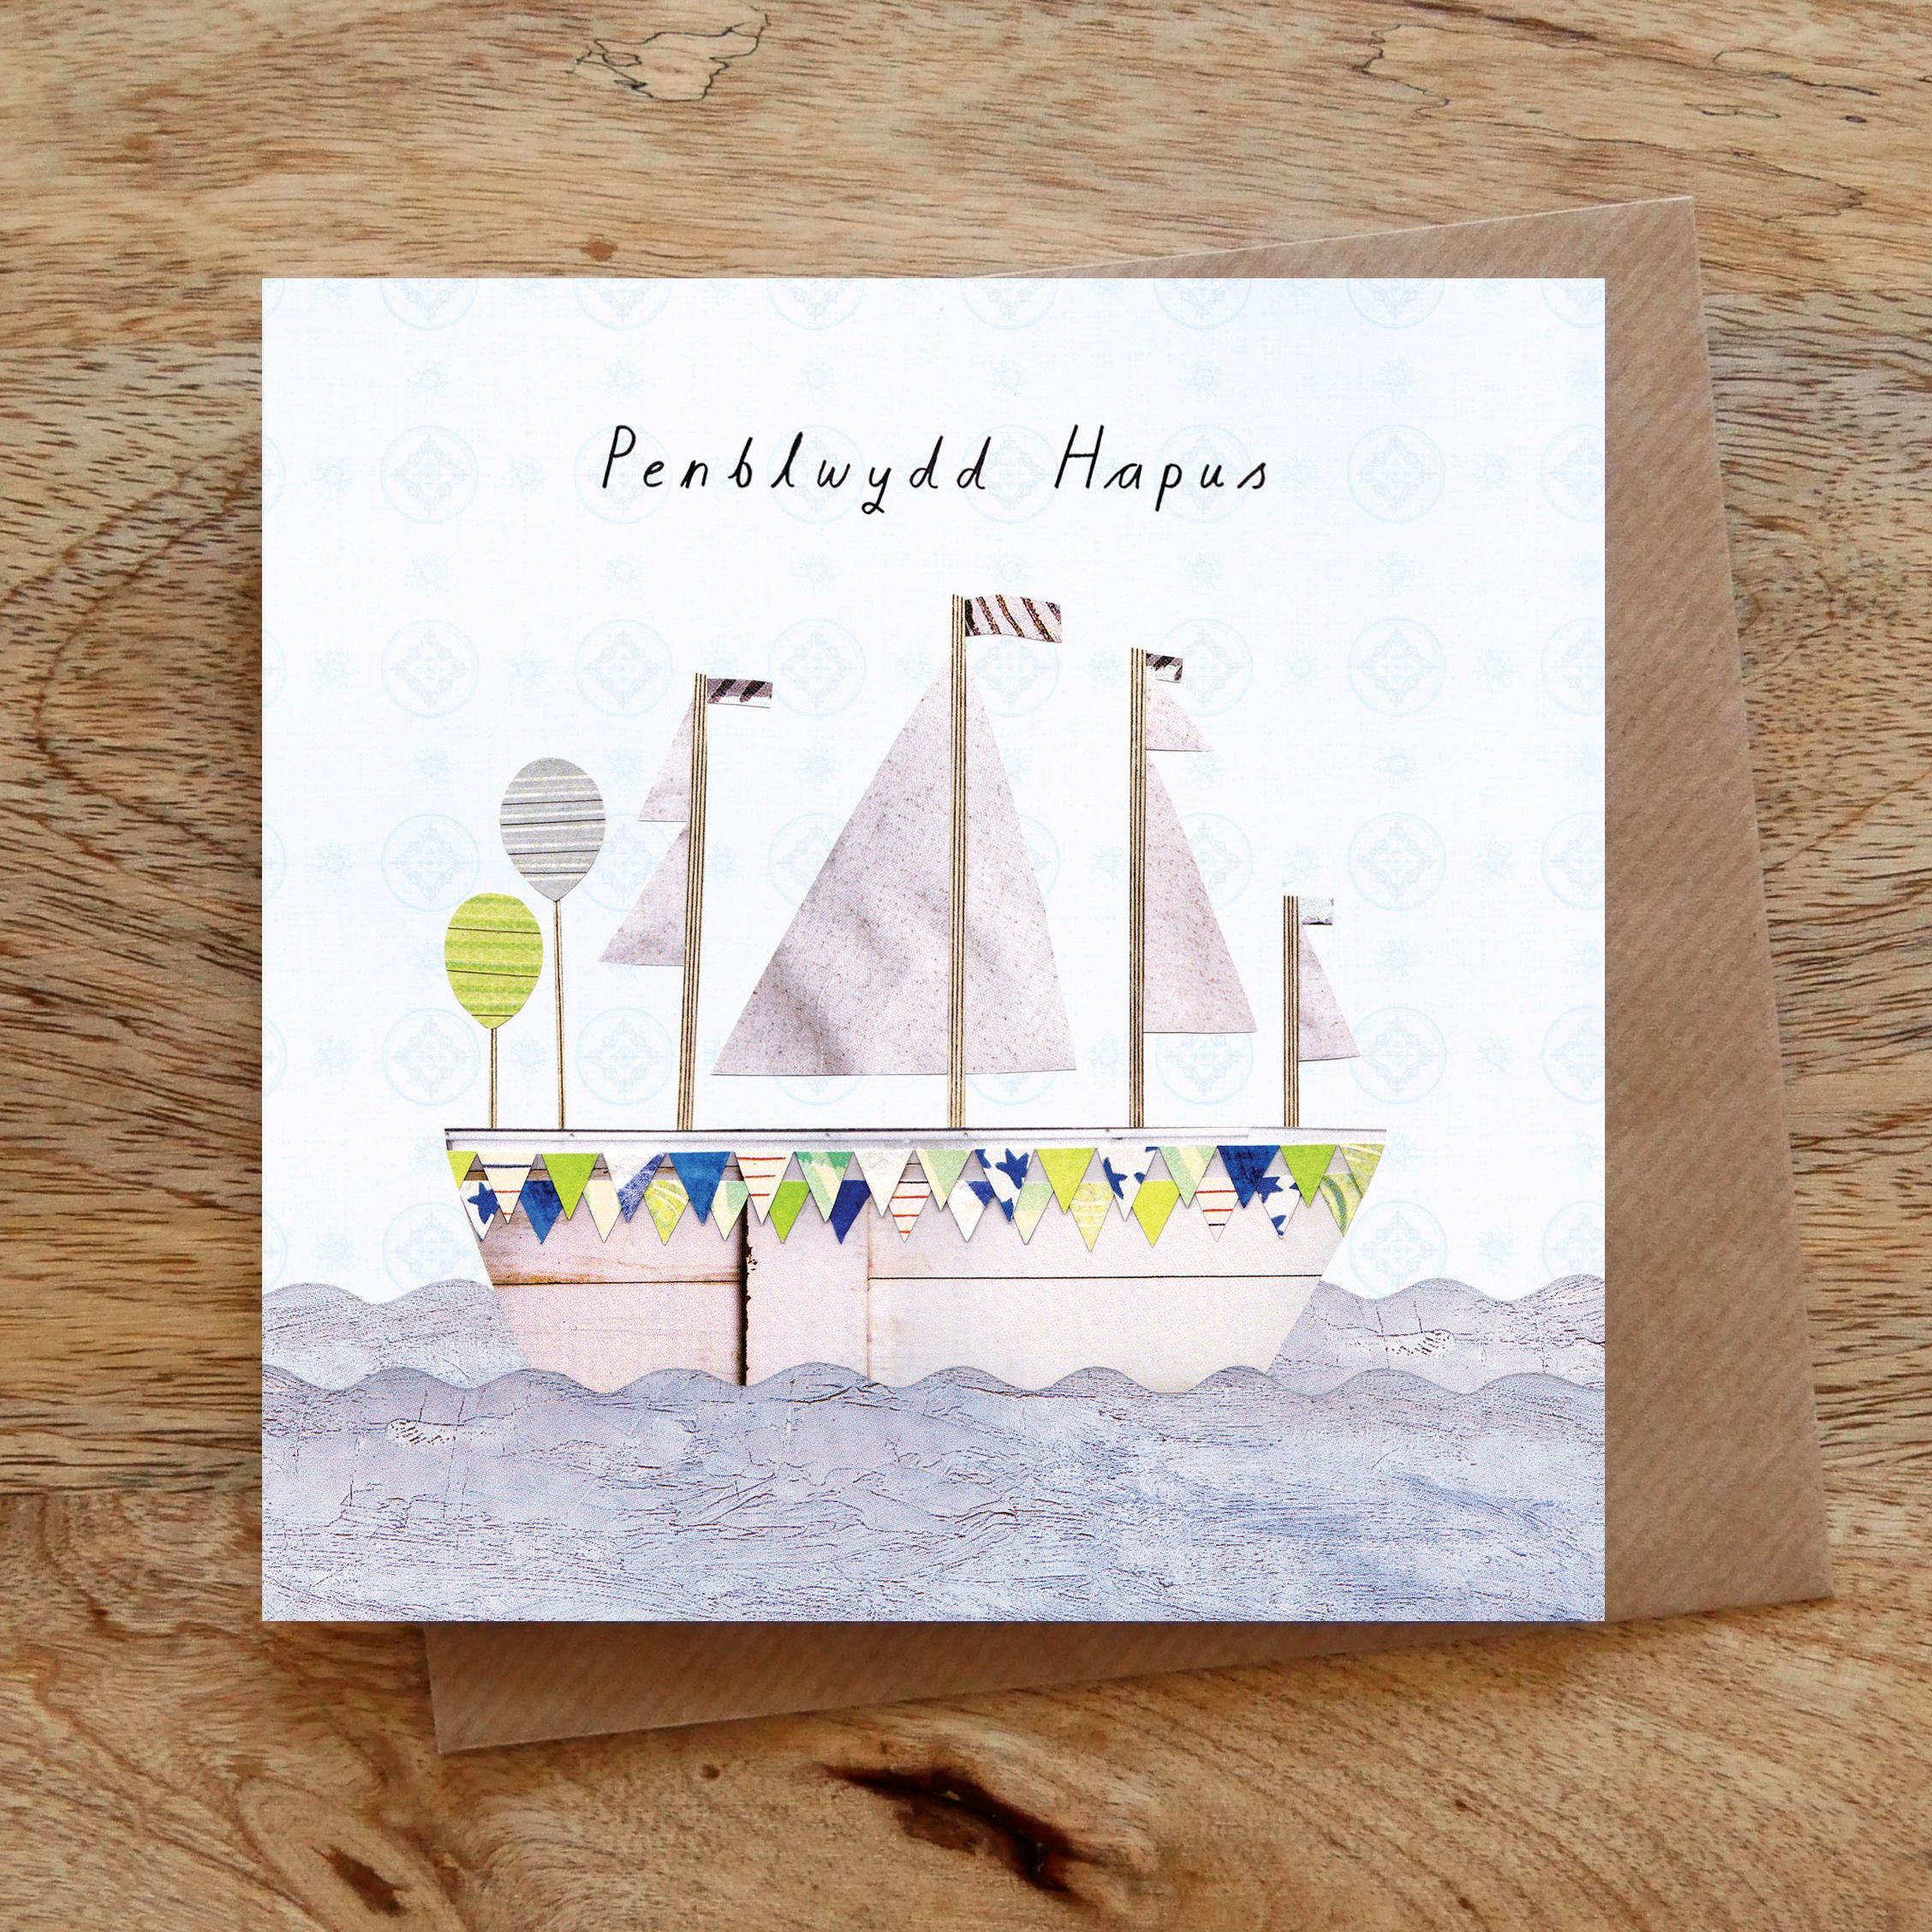 Penblwydd Hapus Happy Birthday Welsh Greeting Card Welsh Etsy Boat Card Nautical Cards Greeting Cards